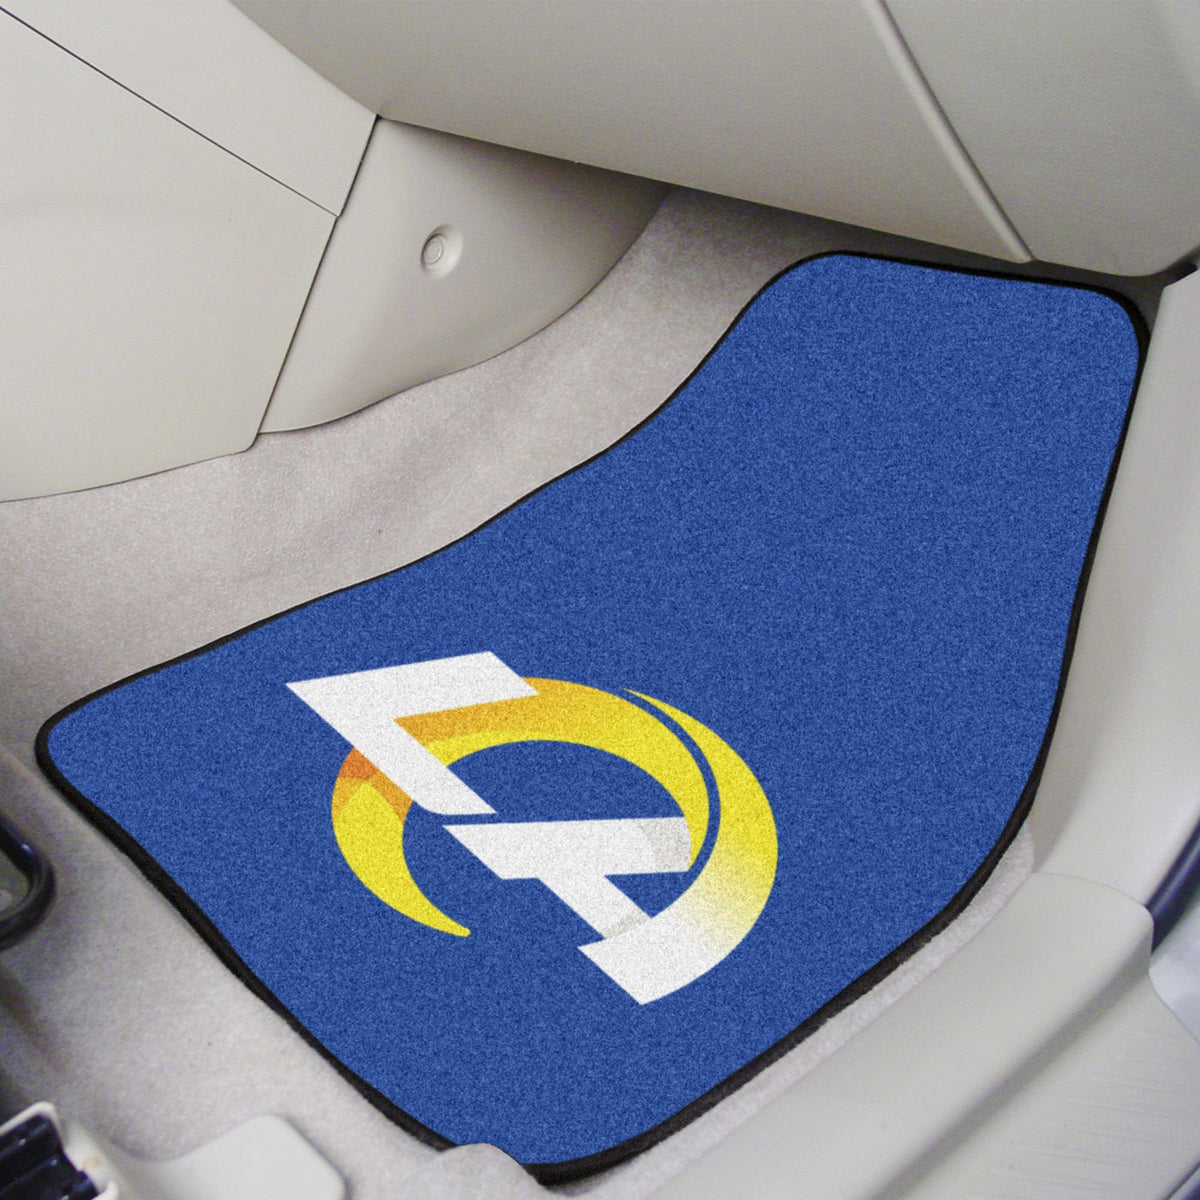 "NFL - 2-pc Carpet Car Mat Set, 17"" x 27"" NFL Mats, Front Car Mats, 2-pc Carpet Car Mat Set, NFL, Auto Fan Mats Los Angeles Rams"